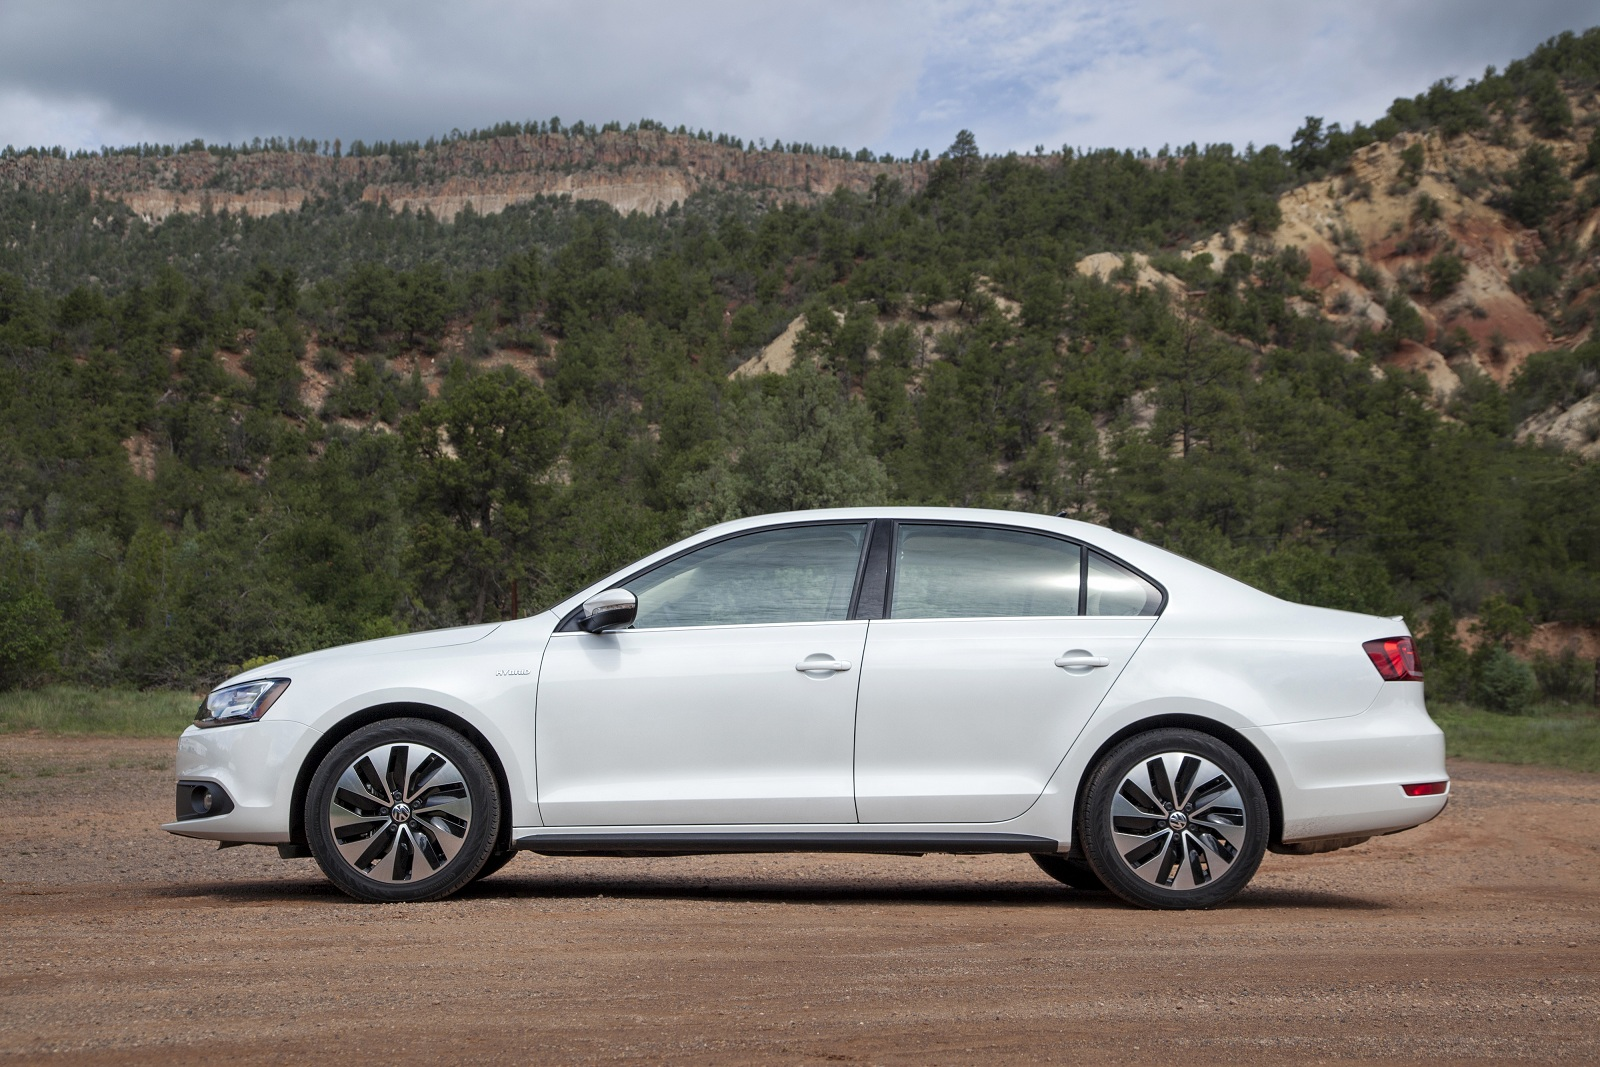 2013 vw jetta hybrid epa rating of 45 mpg. Black Bedroom Furniture Sets. Home Design Ideas